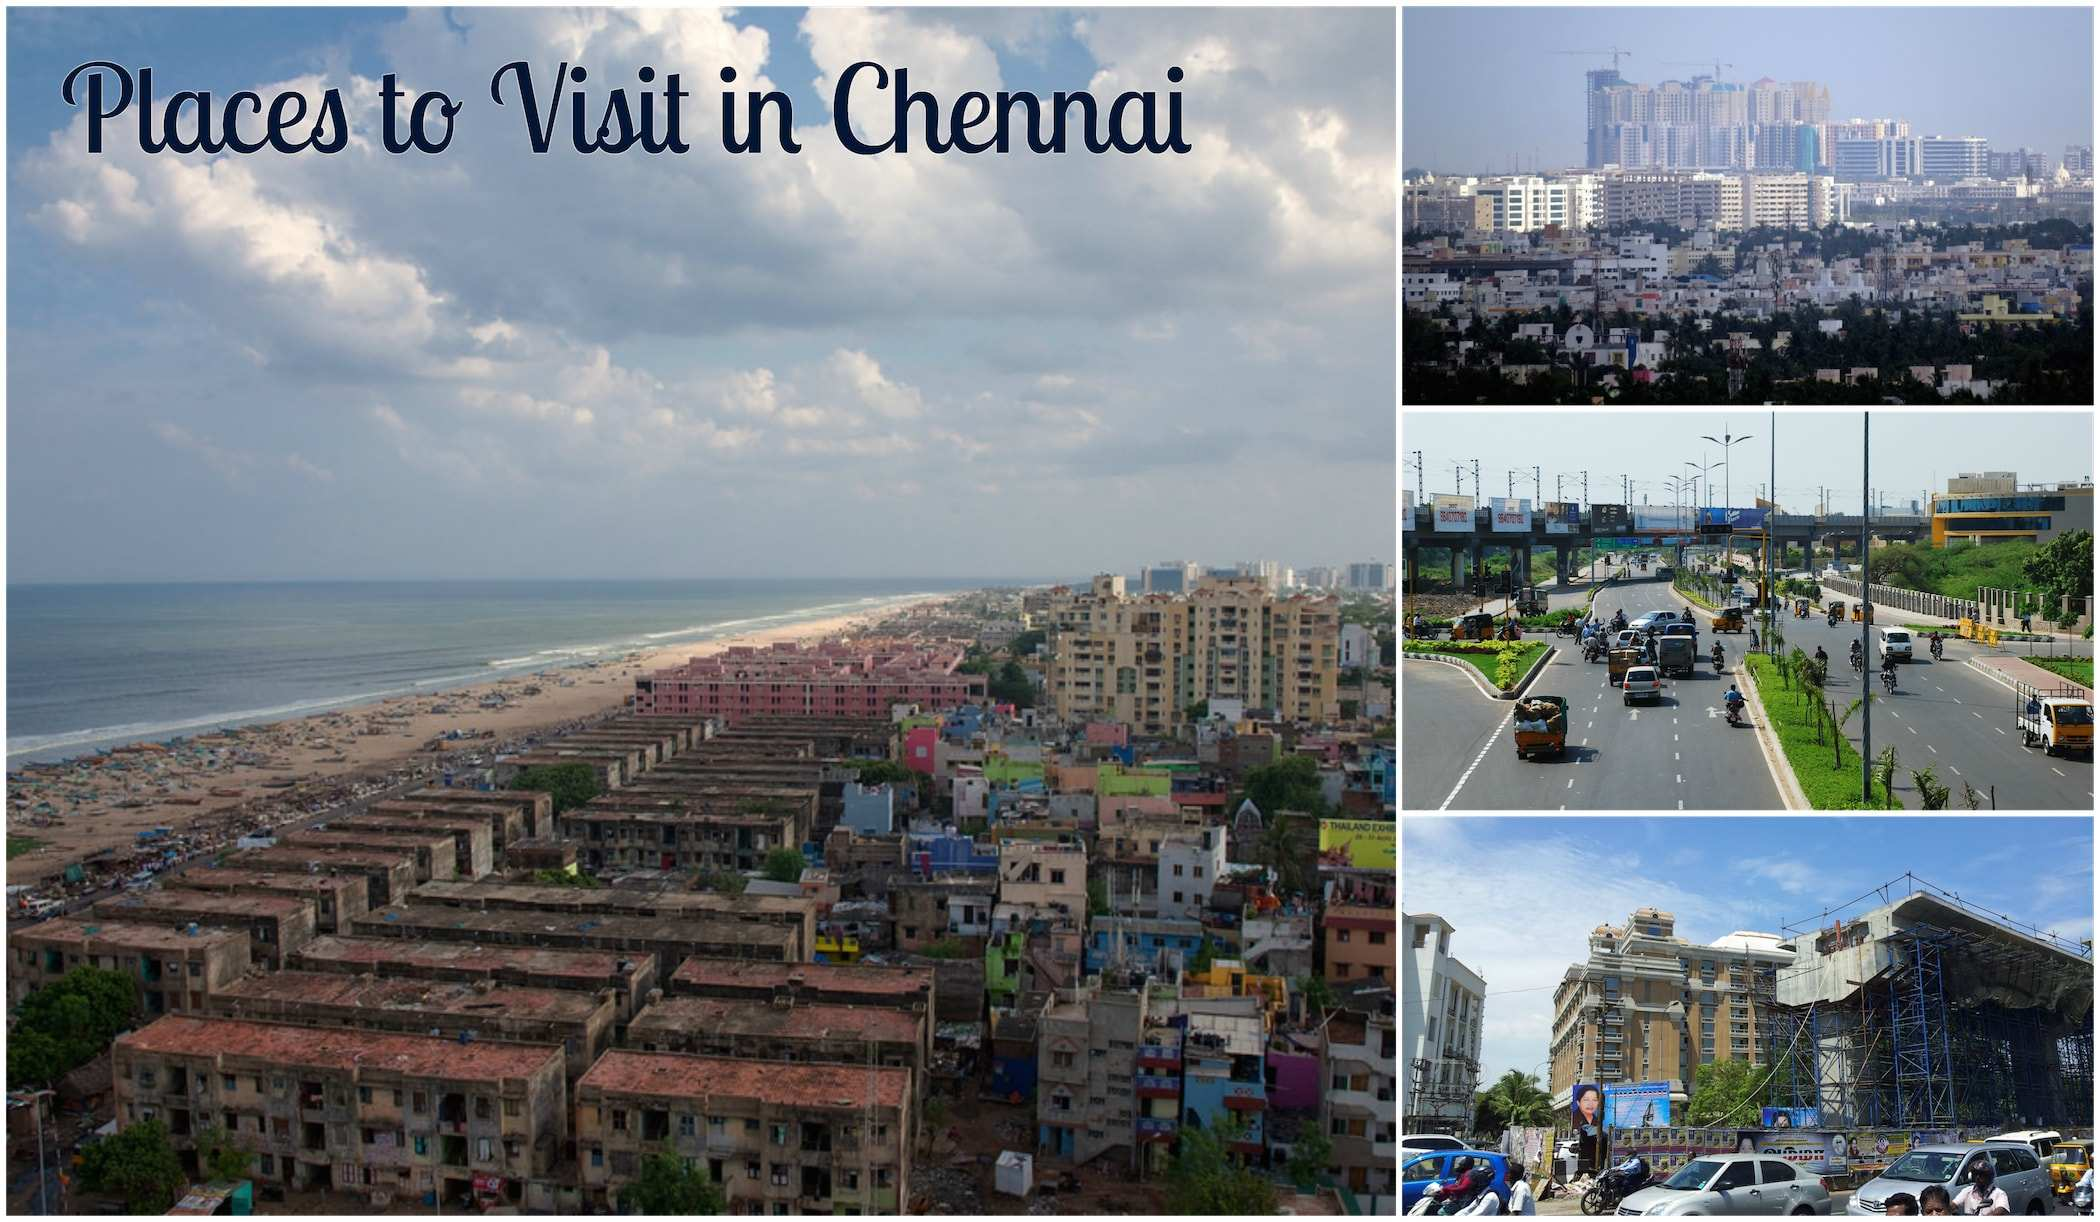 Chennai-Places-to-visit.jpg